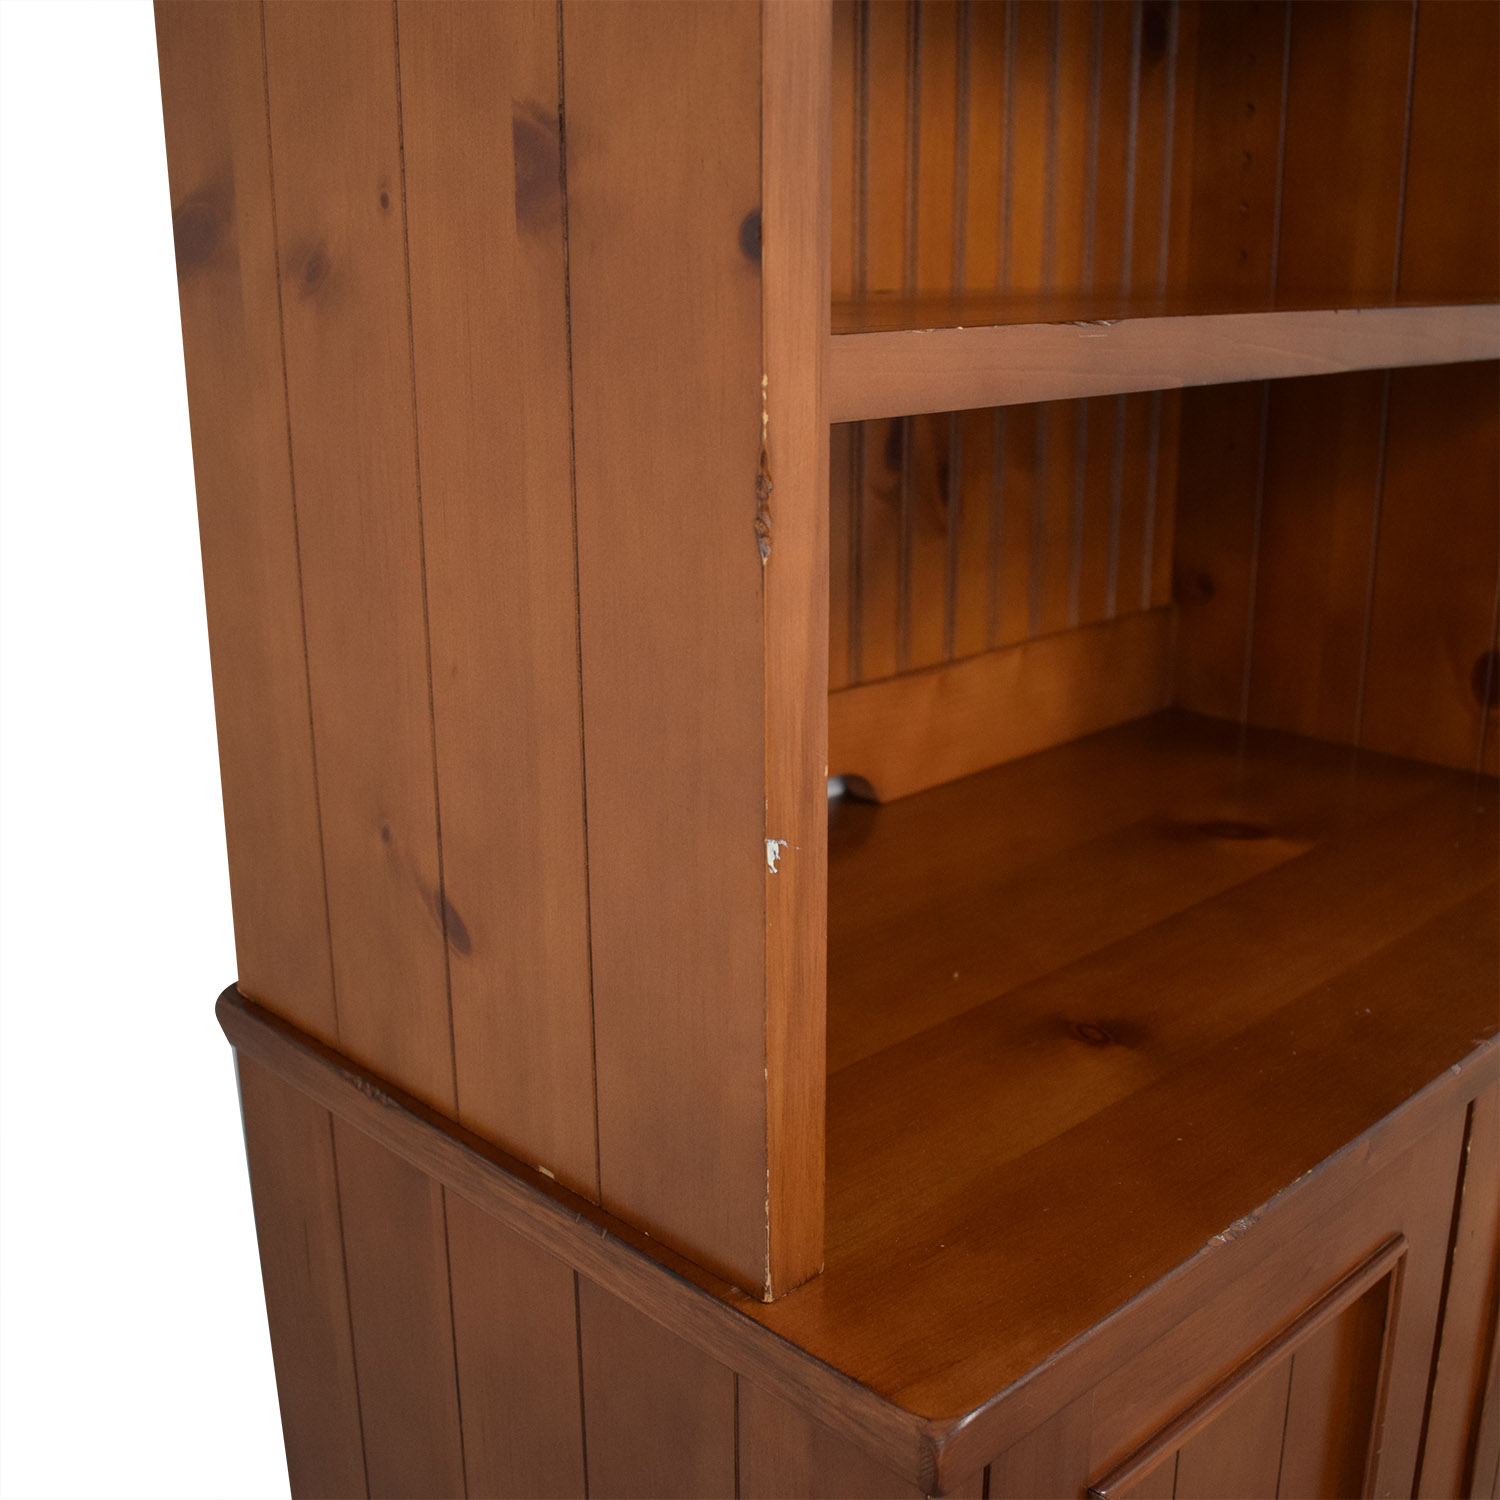 Pottery Barn Kids Pottery Barn Kids Cabinet and Hutch for sale